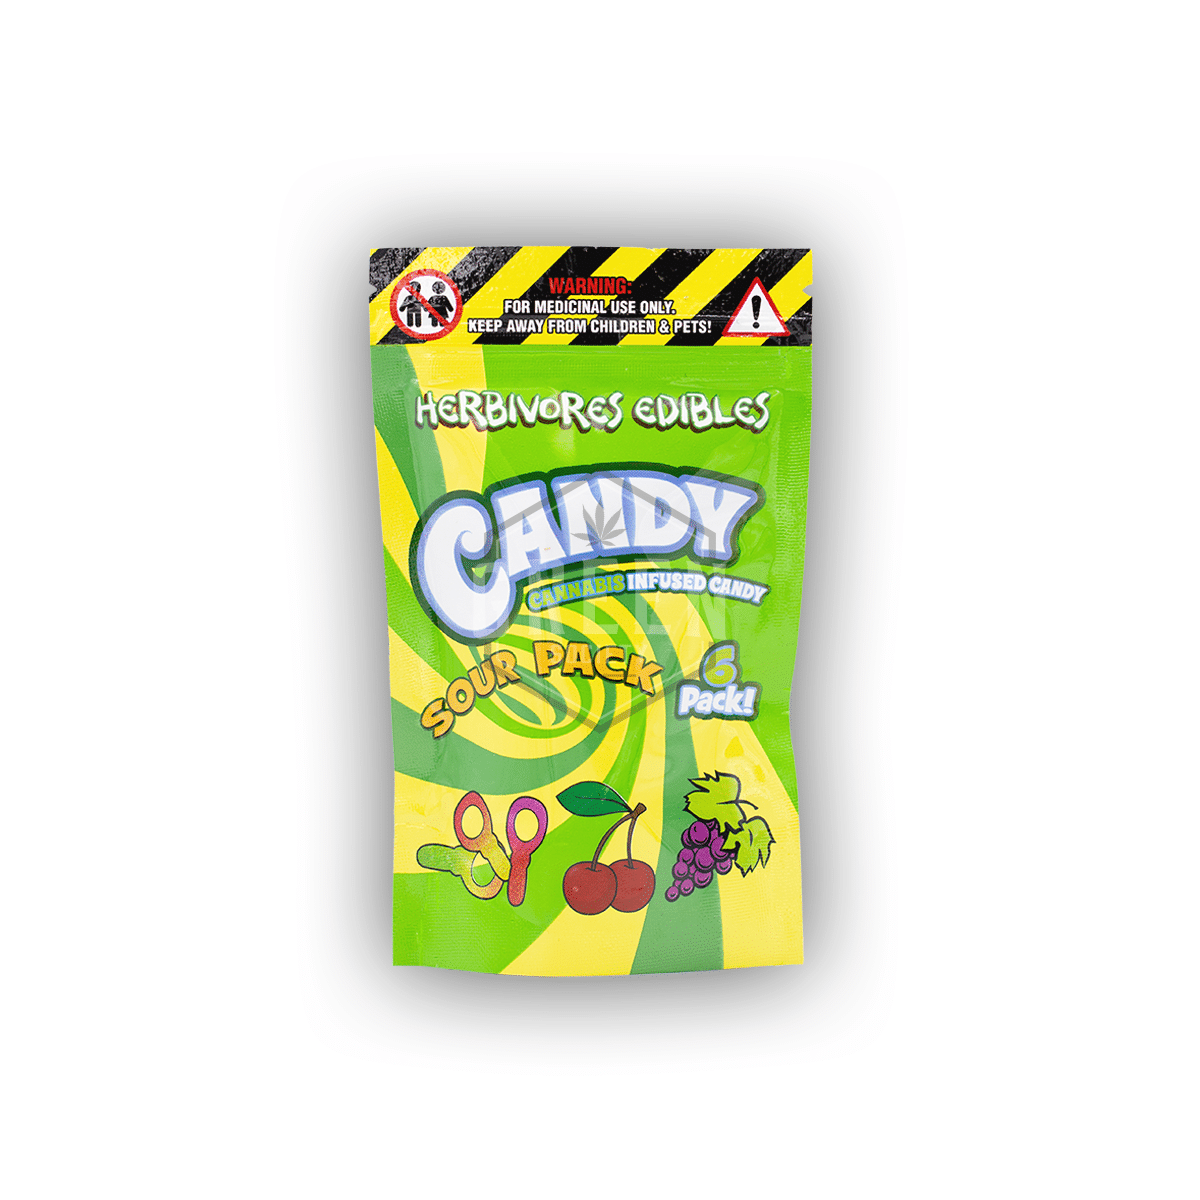 Sour Pack by Herbivores Edibles by Green Society - Image © 2018 Green Society. All Rights Reserved.